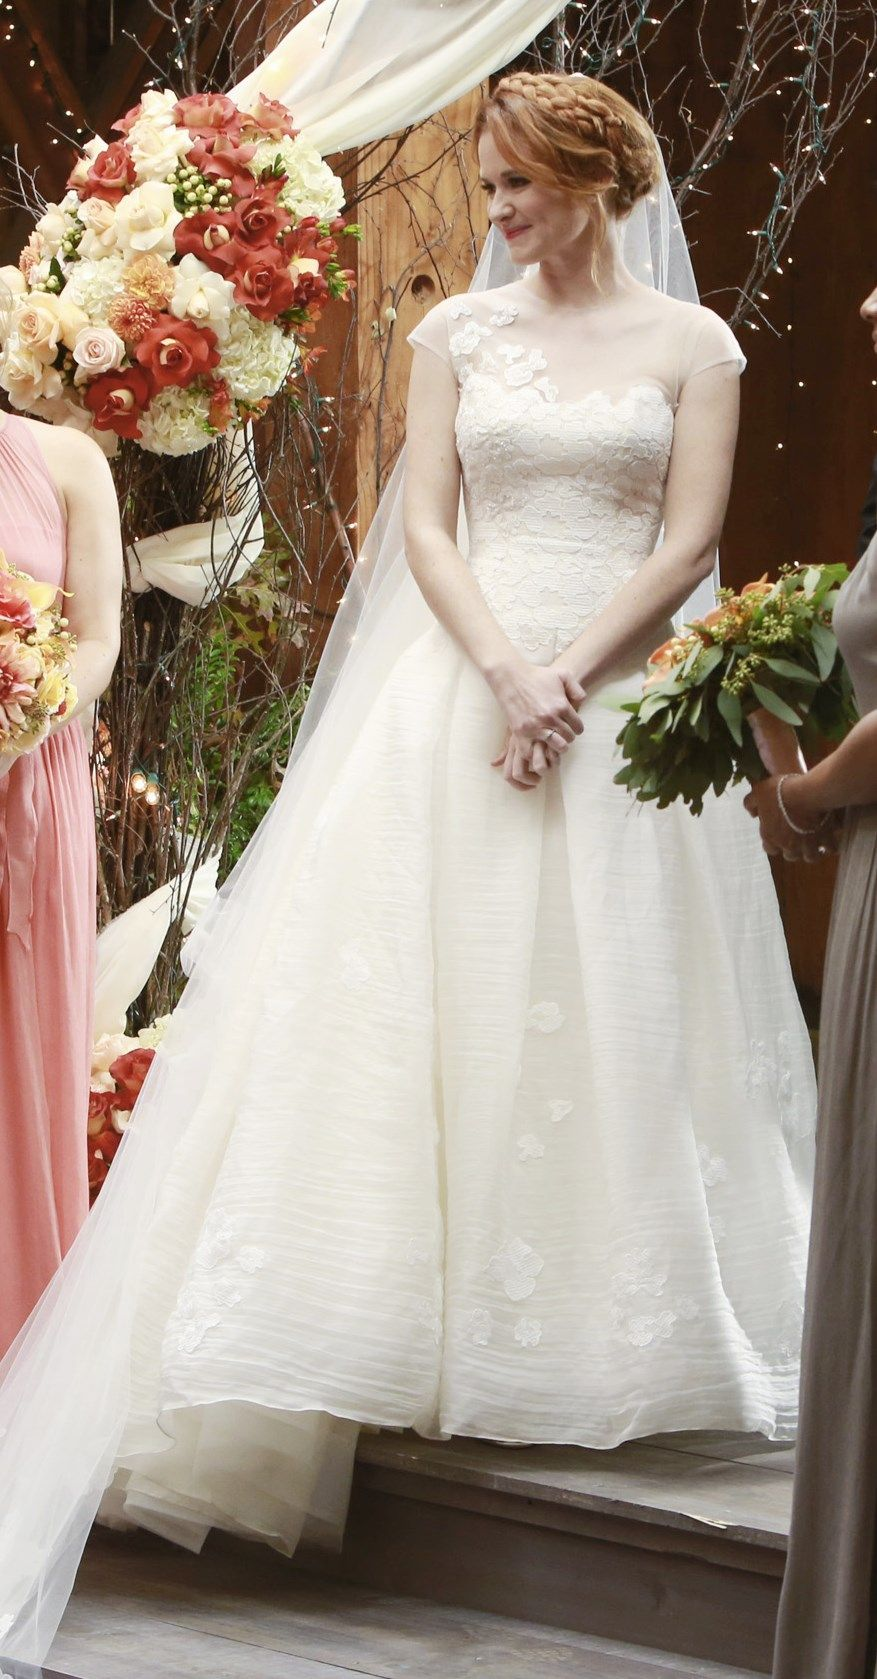 April Kepner Wedding Dress | favorites | Pinterest ...